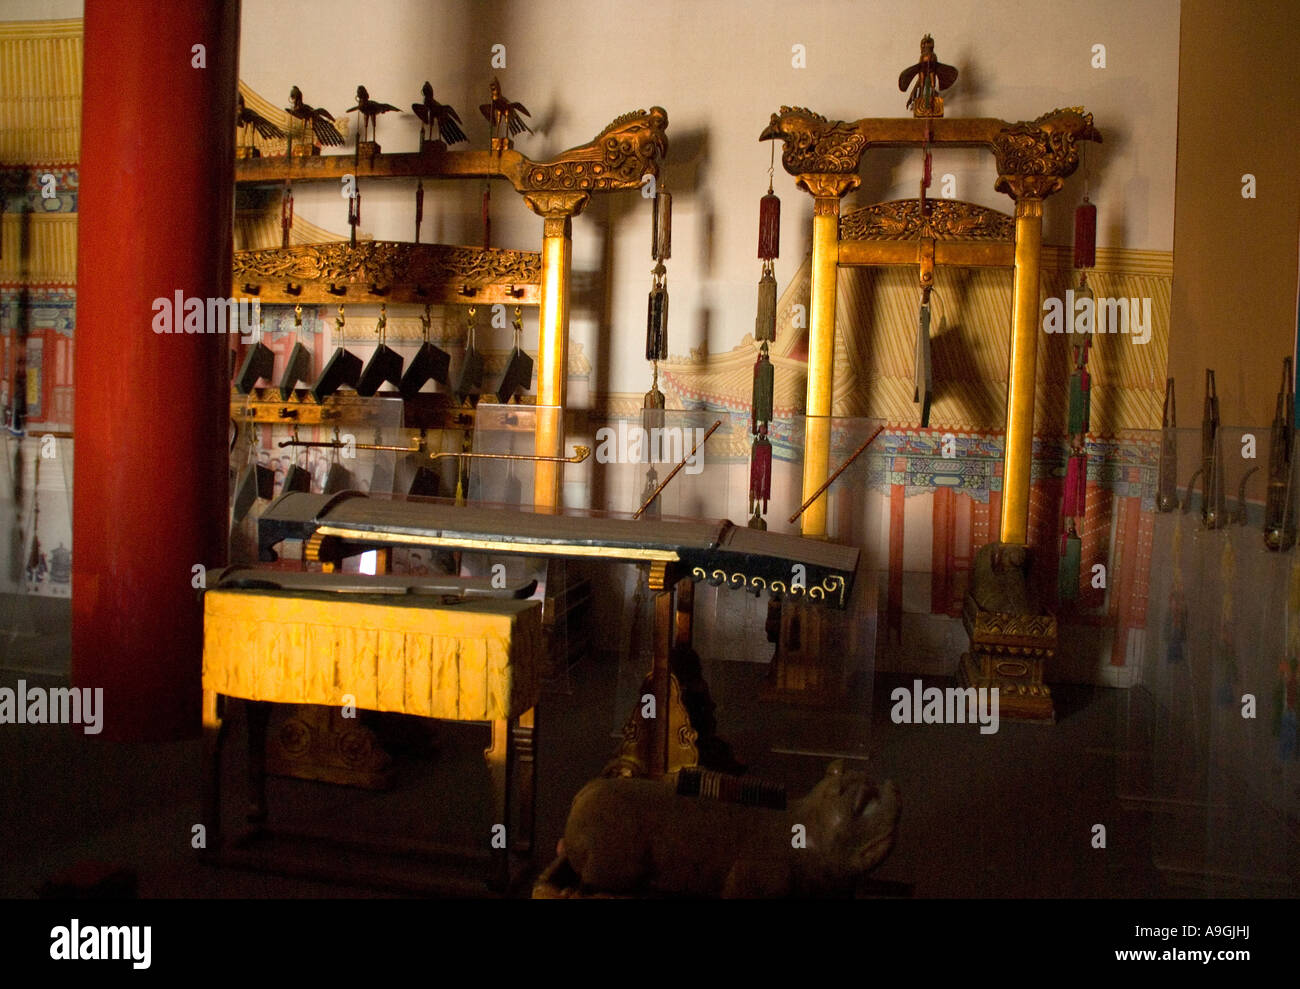 Imperial Palace Museum (Forbidden City) musical instruments on display in Tower of Enhanced Righteousness Hong Yi - Stock Image